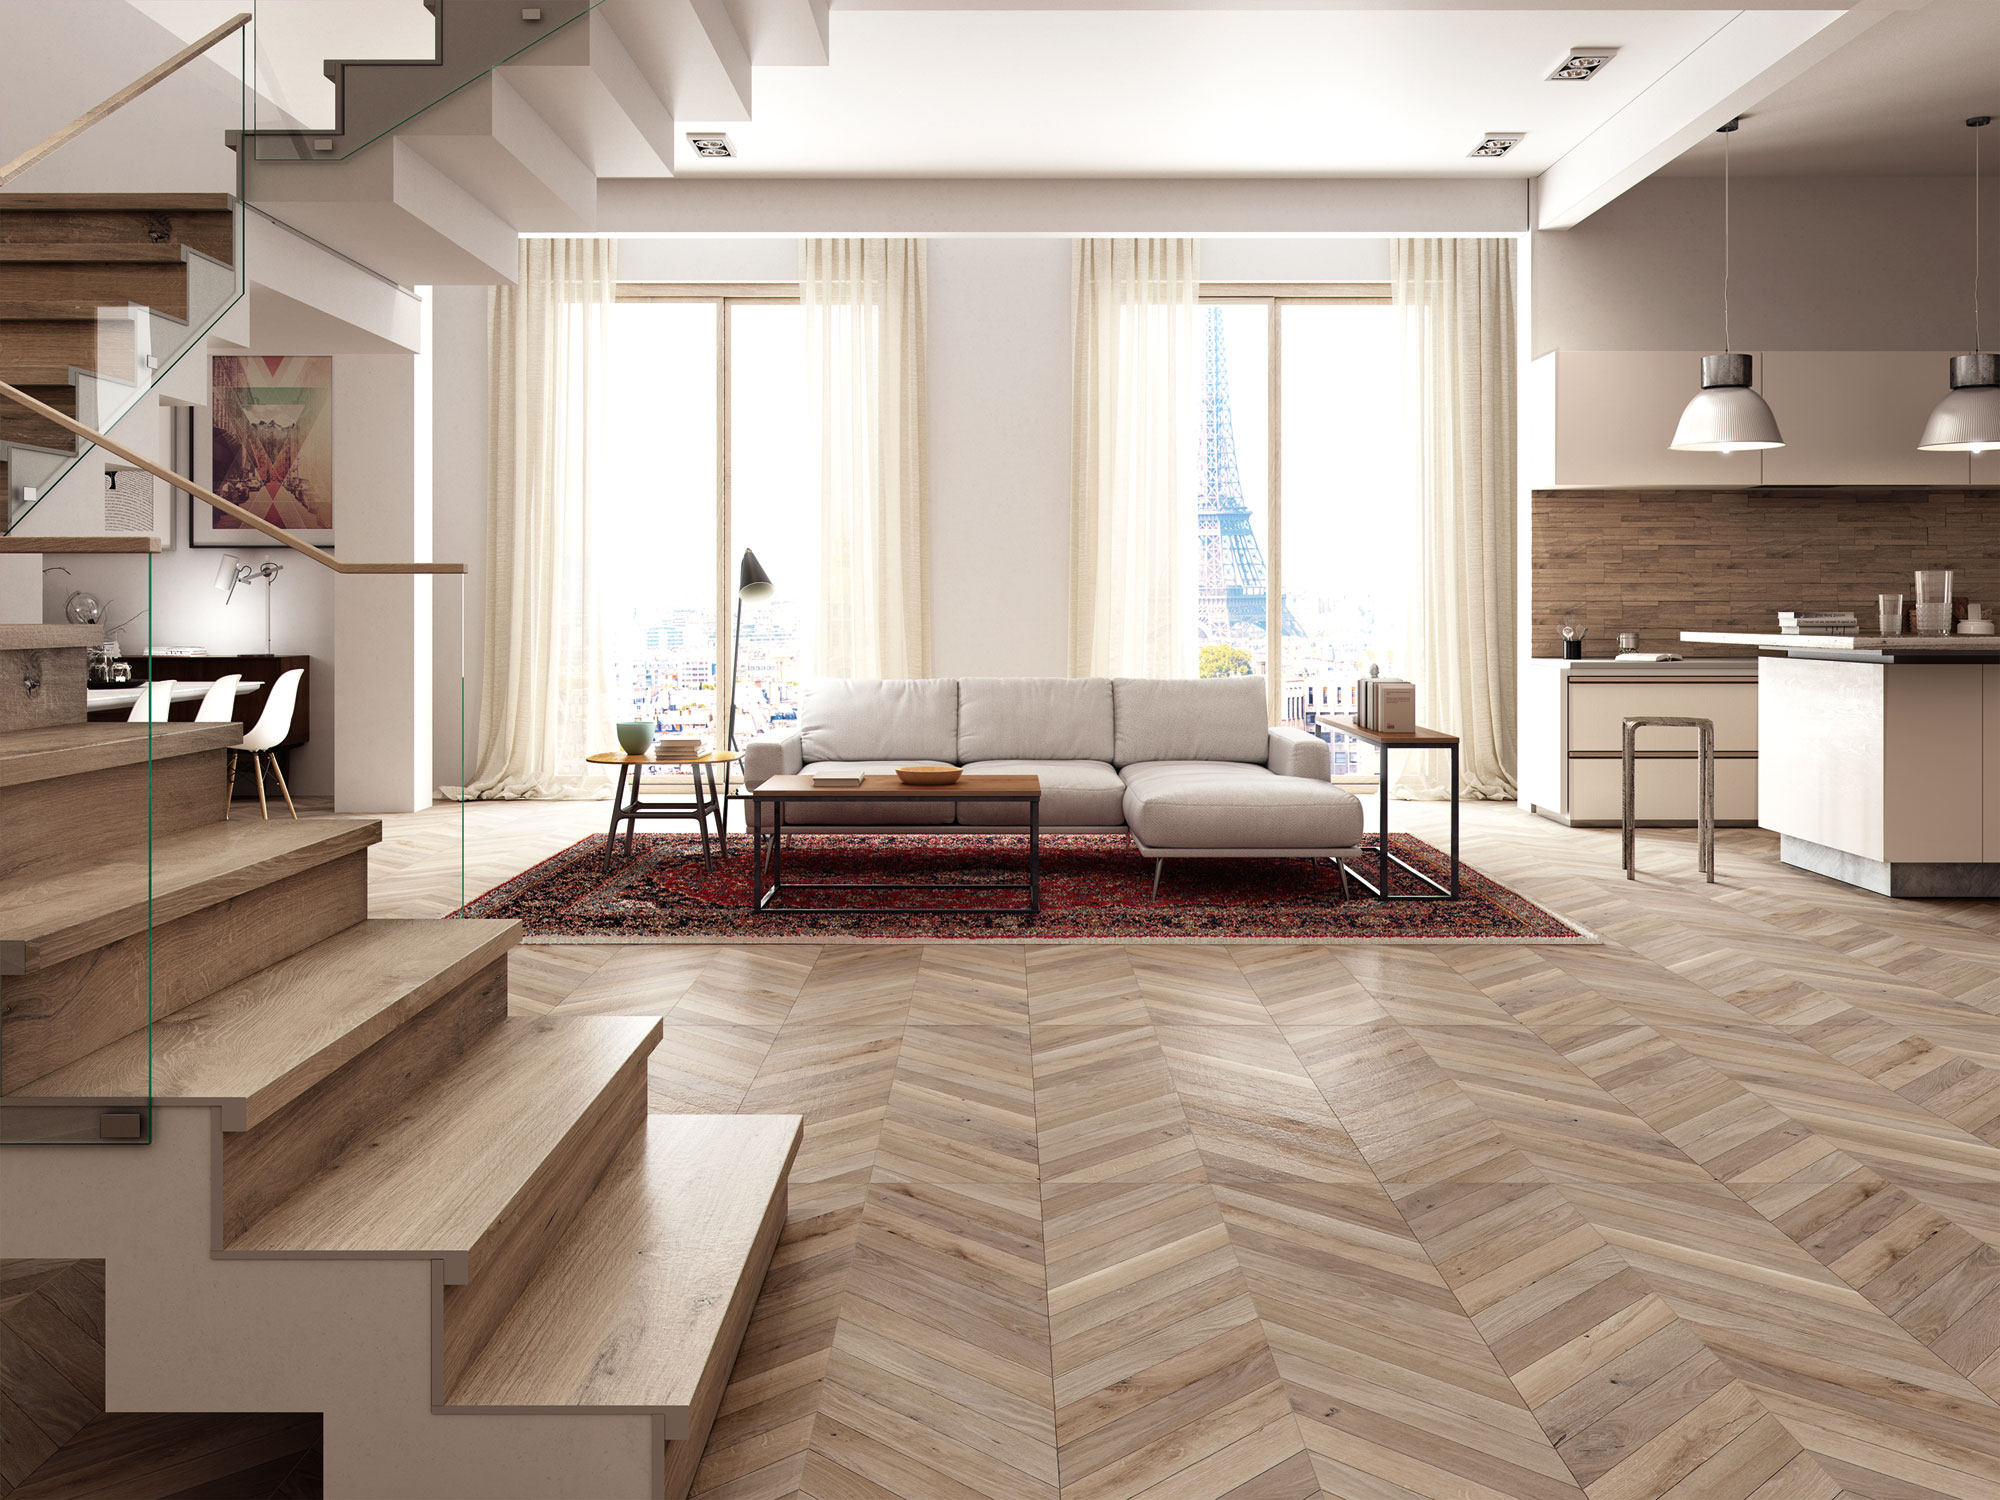 6-pz-floor-heritage-teak-natural-30x120-chevrons-automne-natural-60x120-wall-ruban-teak-natural-30x60.jpg